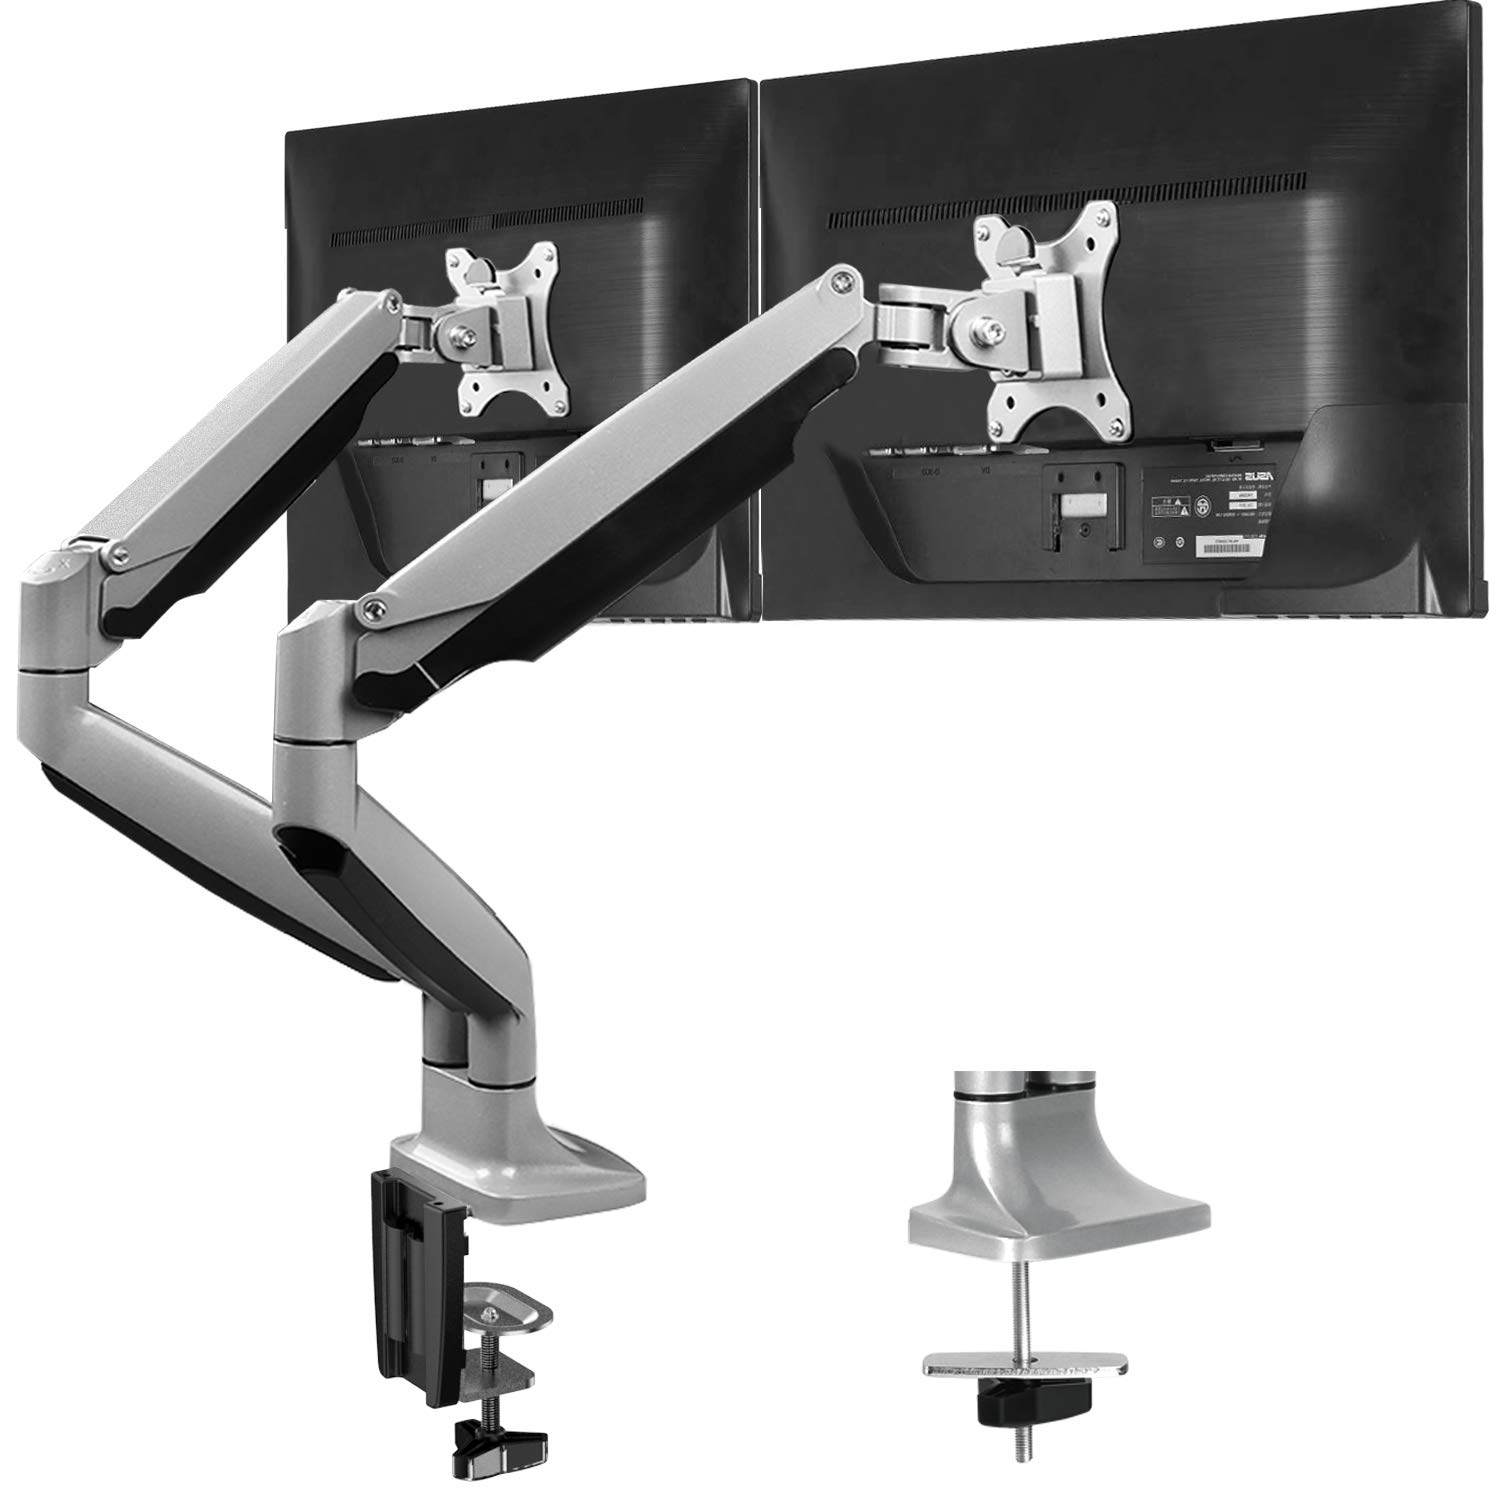 "HUANUO Dual Monitor Mount Stand - Aluminum Gas Spring Monitor Desk Mount Full Motion Adjustable VESA Bracket for Two 13"" to 32"" Computer Screens with Clamp, Grommet Base - Each Arm Hold up to 19.8 lbs"